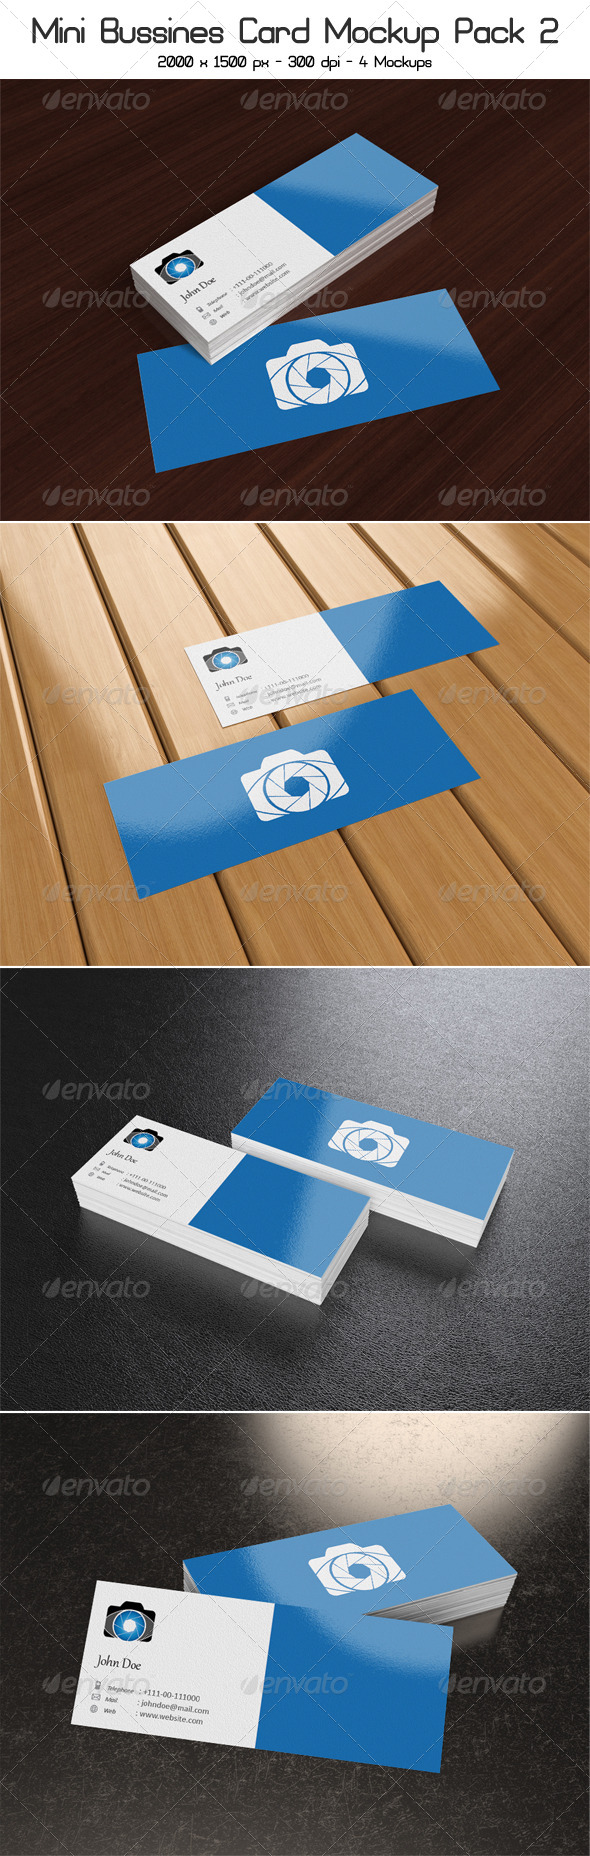 GraphicRiver Mini Business Card Mock-Up Pack 2 4481804